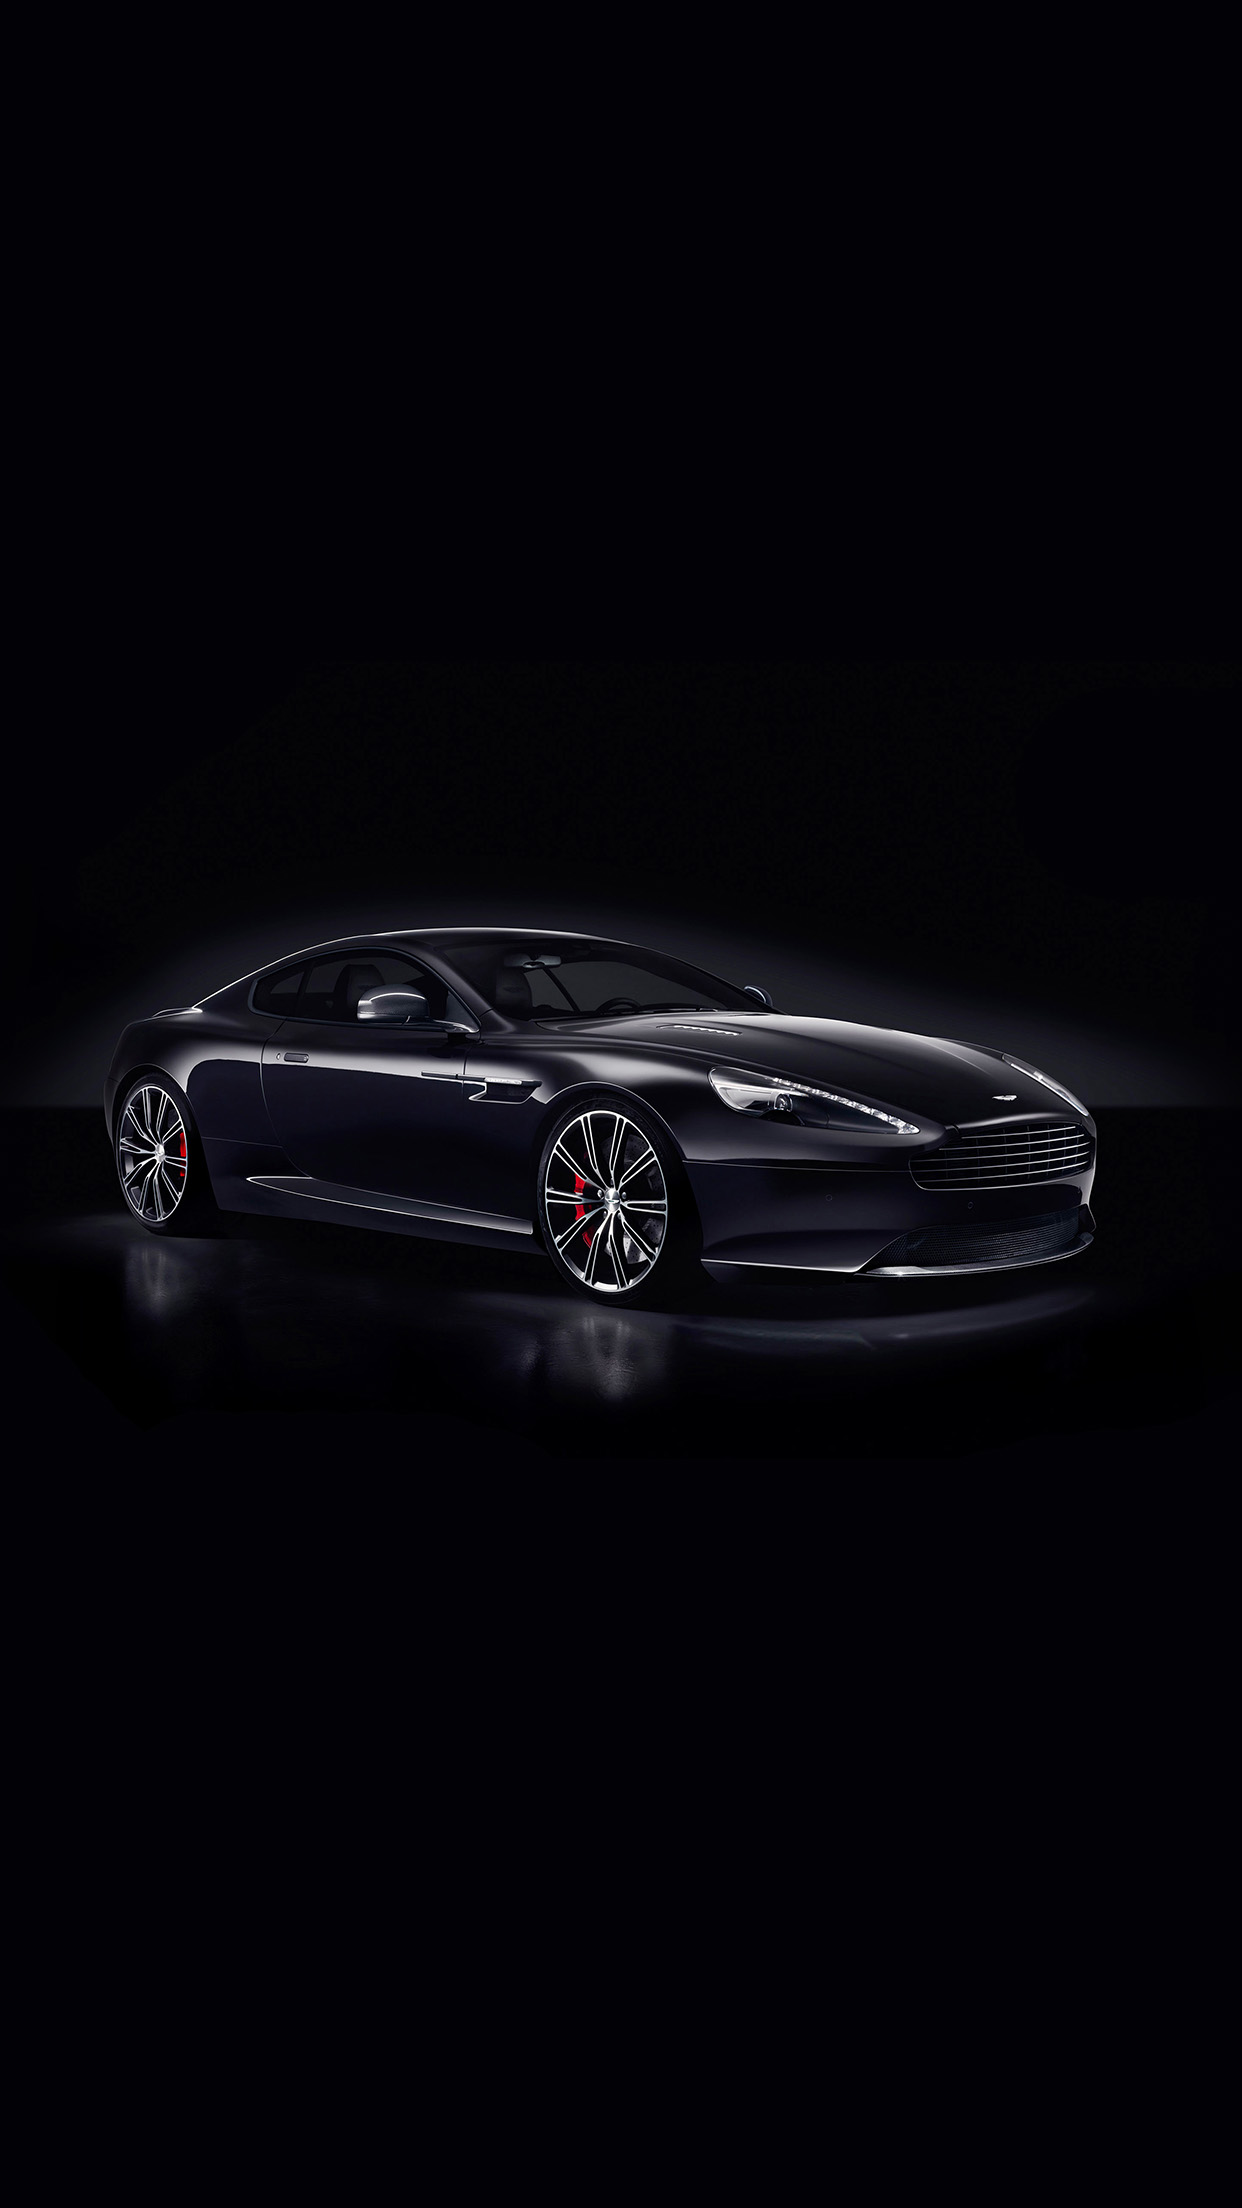 Iphone6papers Am30 Aston Martin Db9 Dark Sports Car